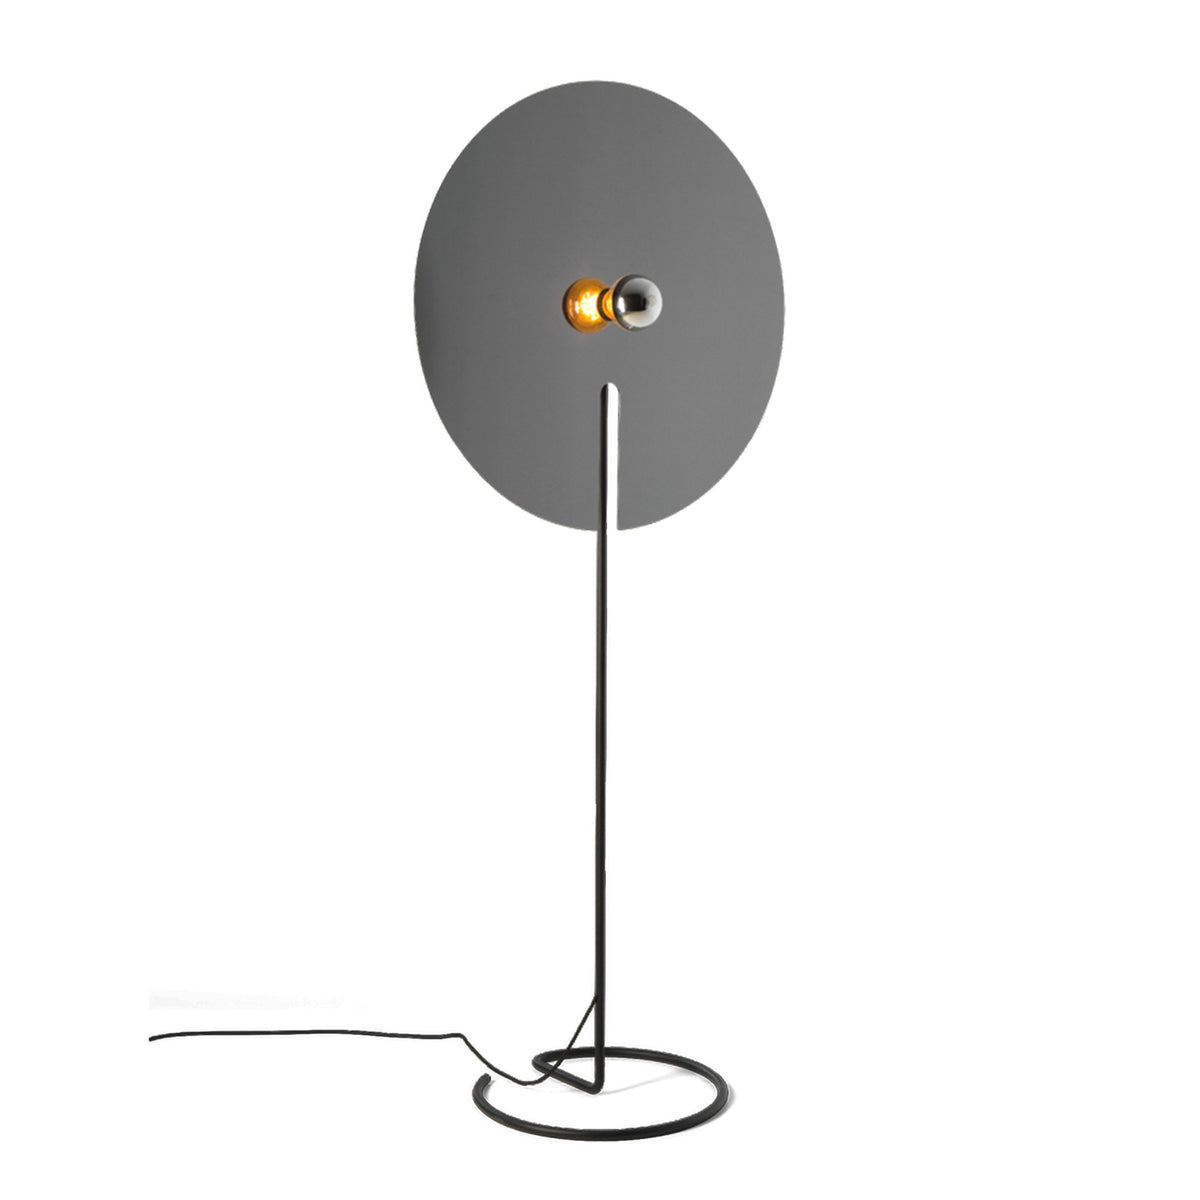 Wever&Ducre Mirro Floor Lamp Black Chrome Mirro 3.0